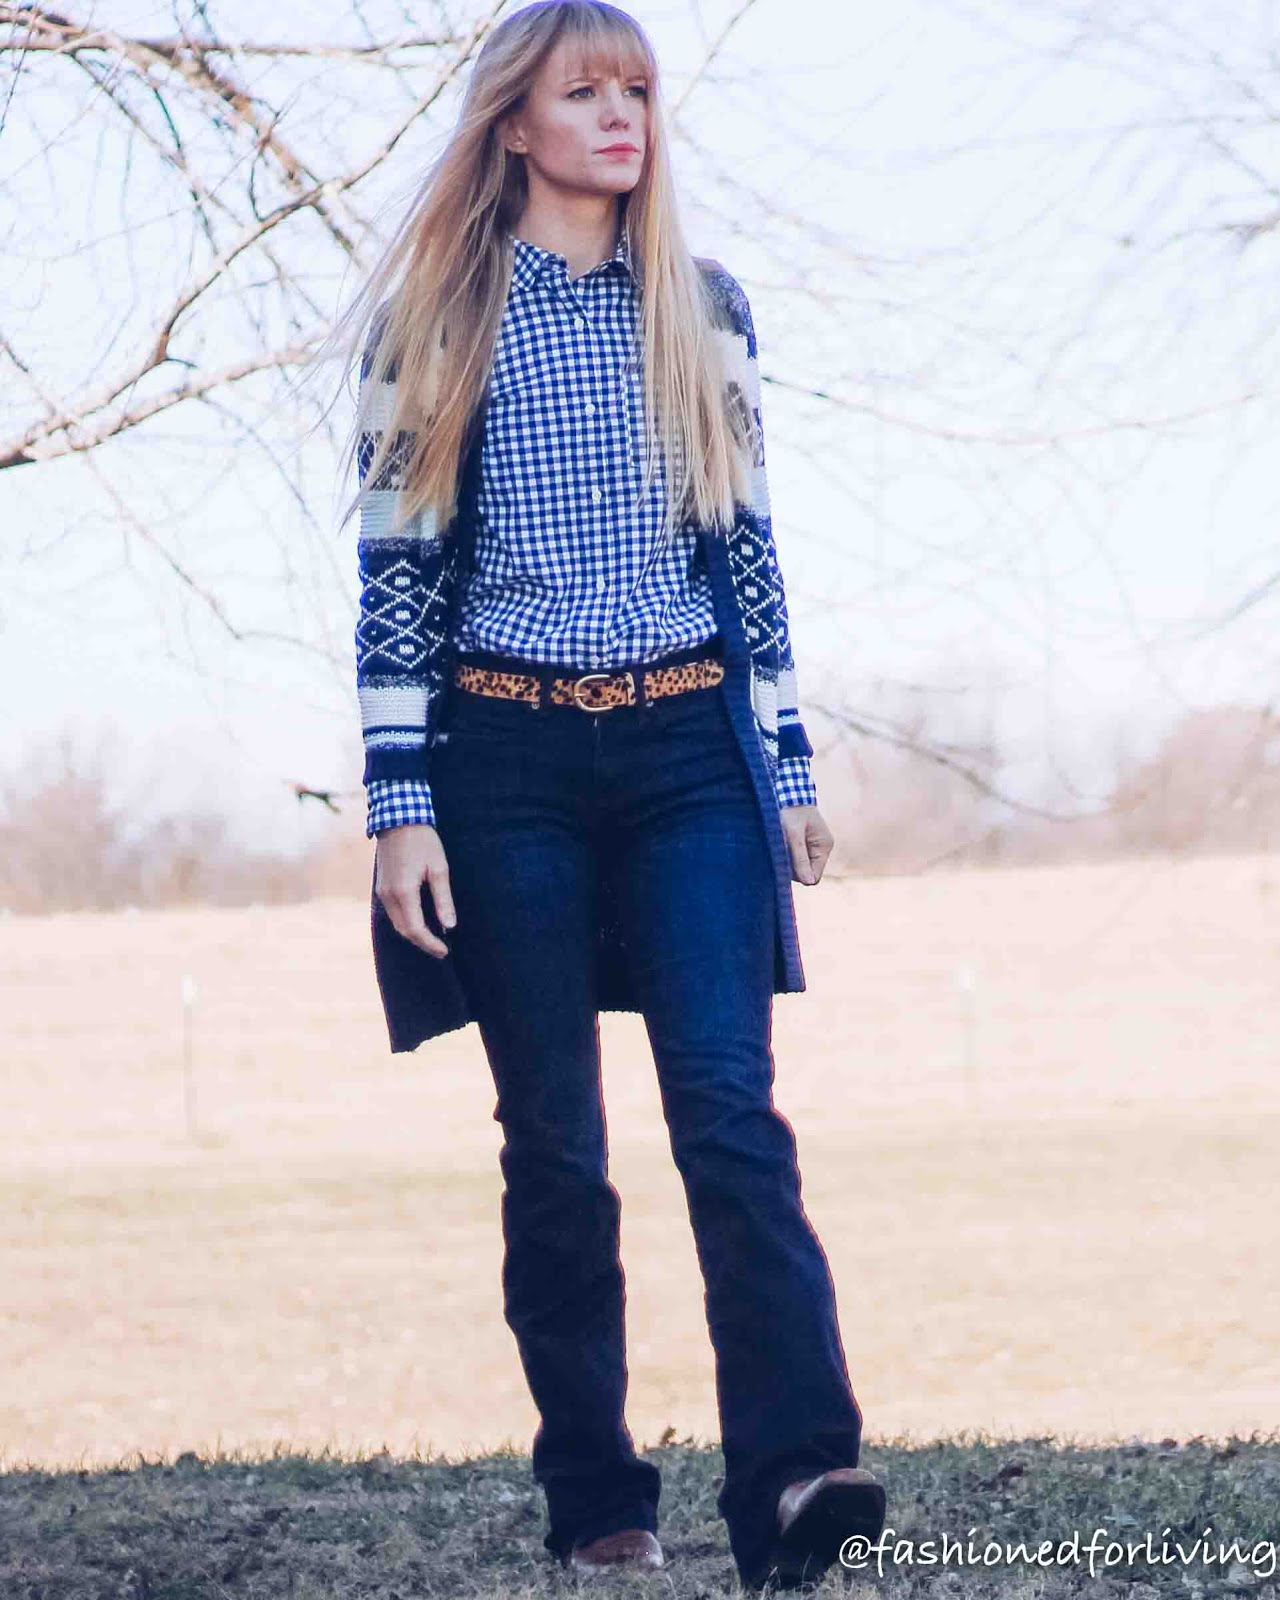 square toe cowboy boots outfit with trouser jeans and long cardigan